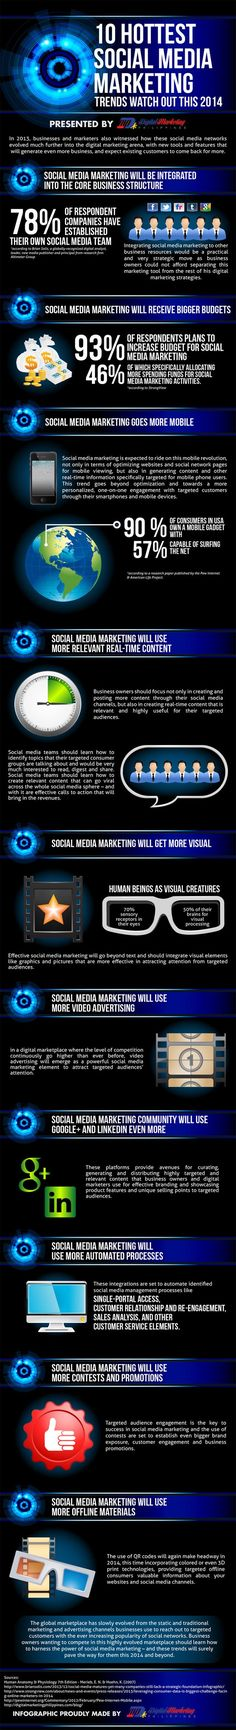 10 Hottest Social Media Marketing Trends Watch Out This 2014 (Infographic) - Business 2 Community